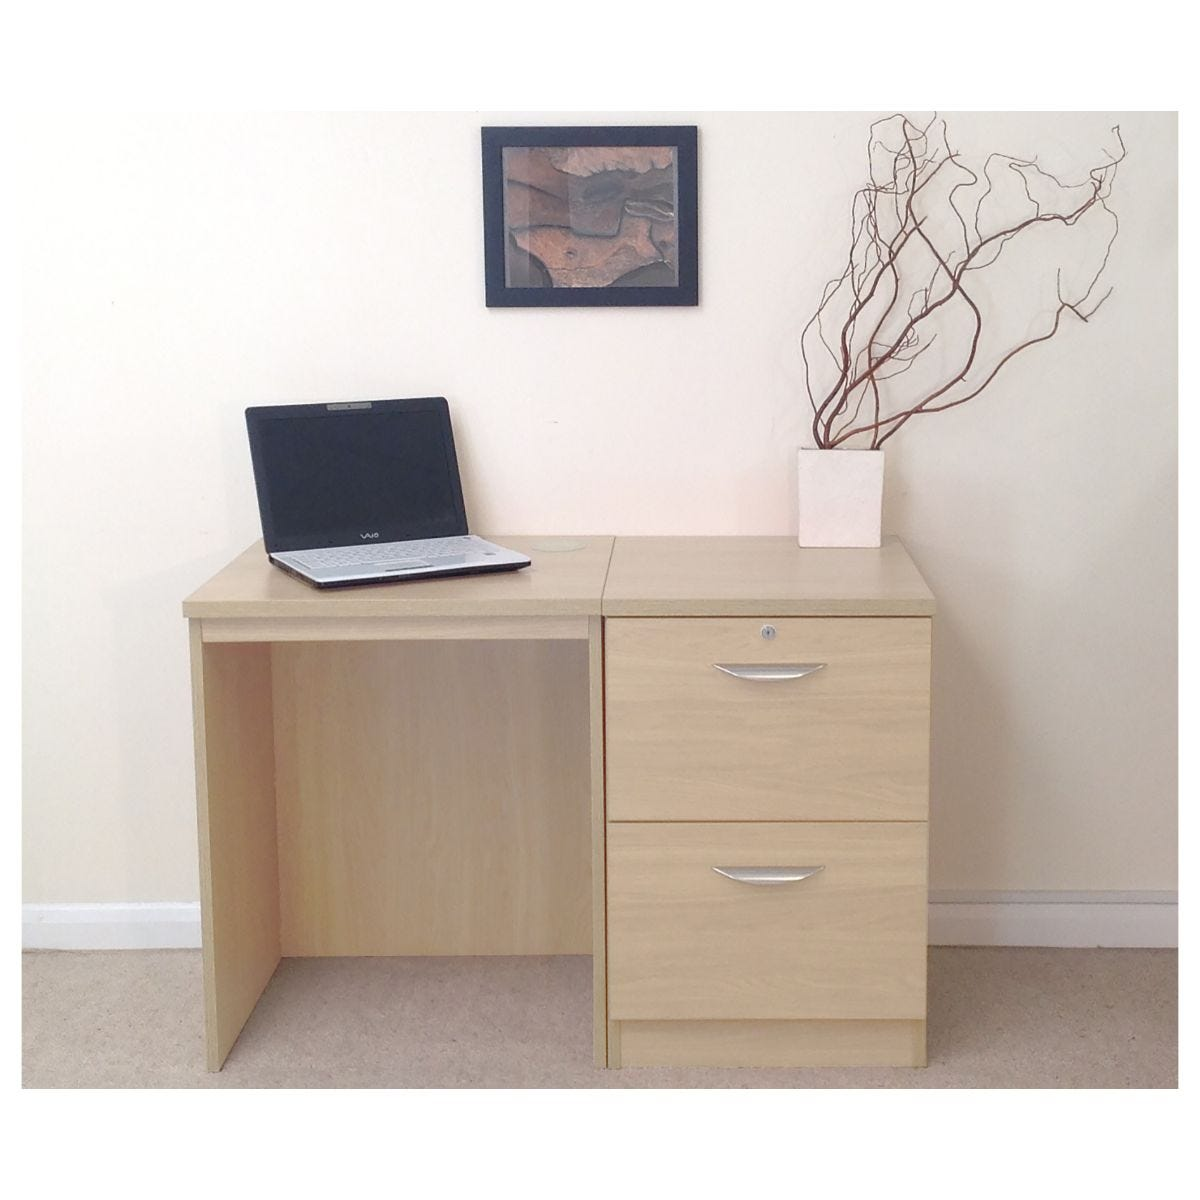 R White Home Office Desk Set with Two Drawers, Beech